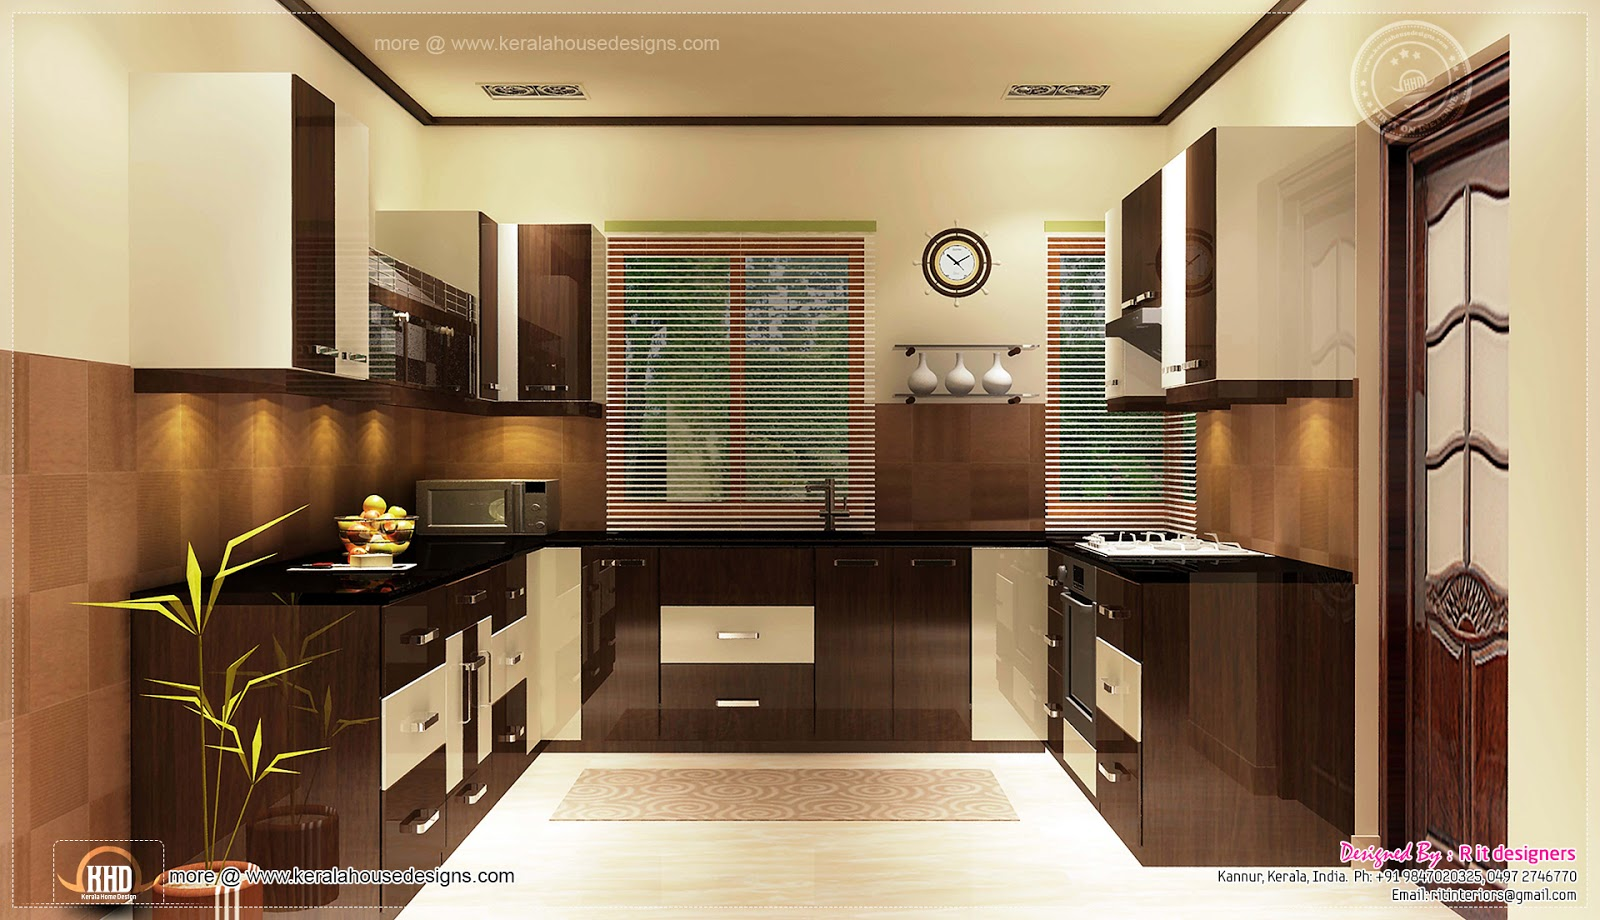 Home interior designs by rit designers kerala home for Home design ideas pictures